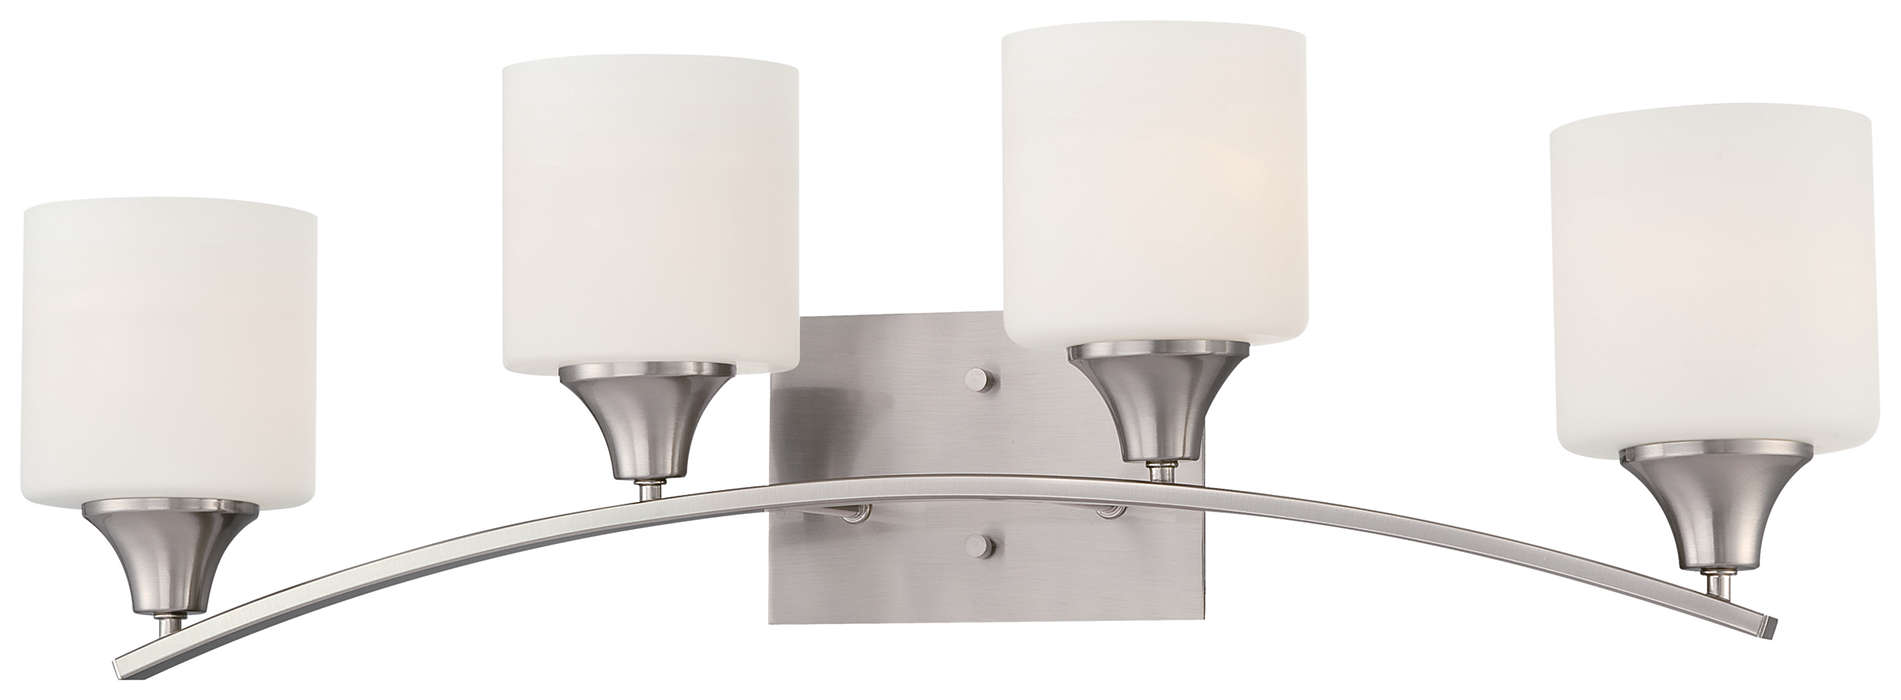 Hayden 4-light Bath in Satin Nickel finish